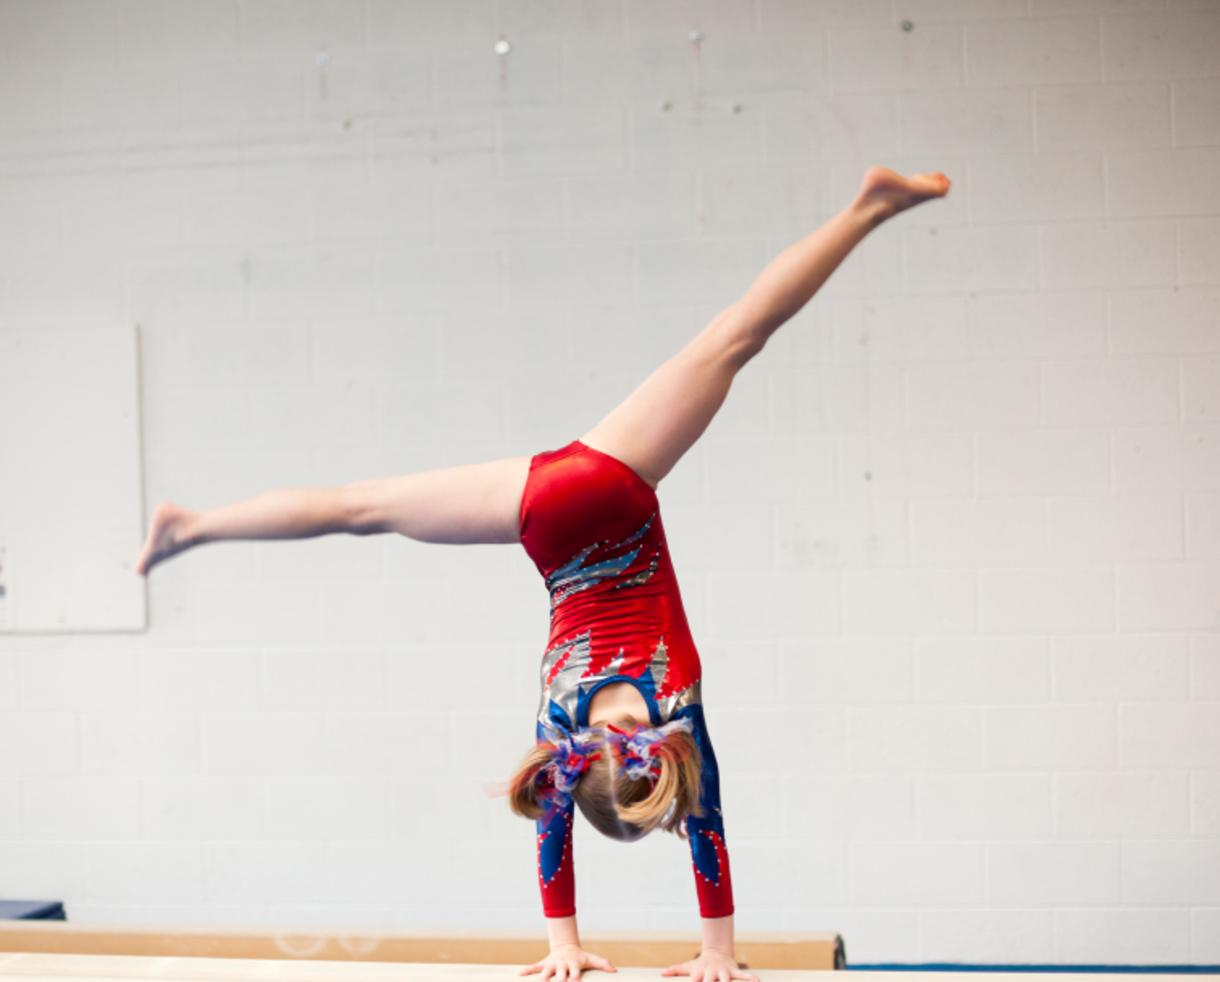 $169 or $219 for Winter MarVaTots 'n Teens 12-Week Gymnastics Session for Boys & Girls - All Ages (up to 30% off)